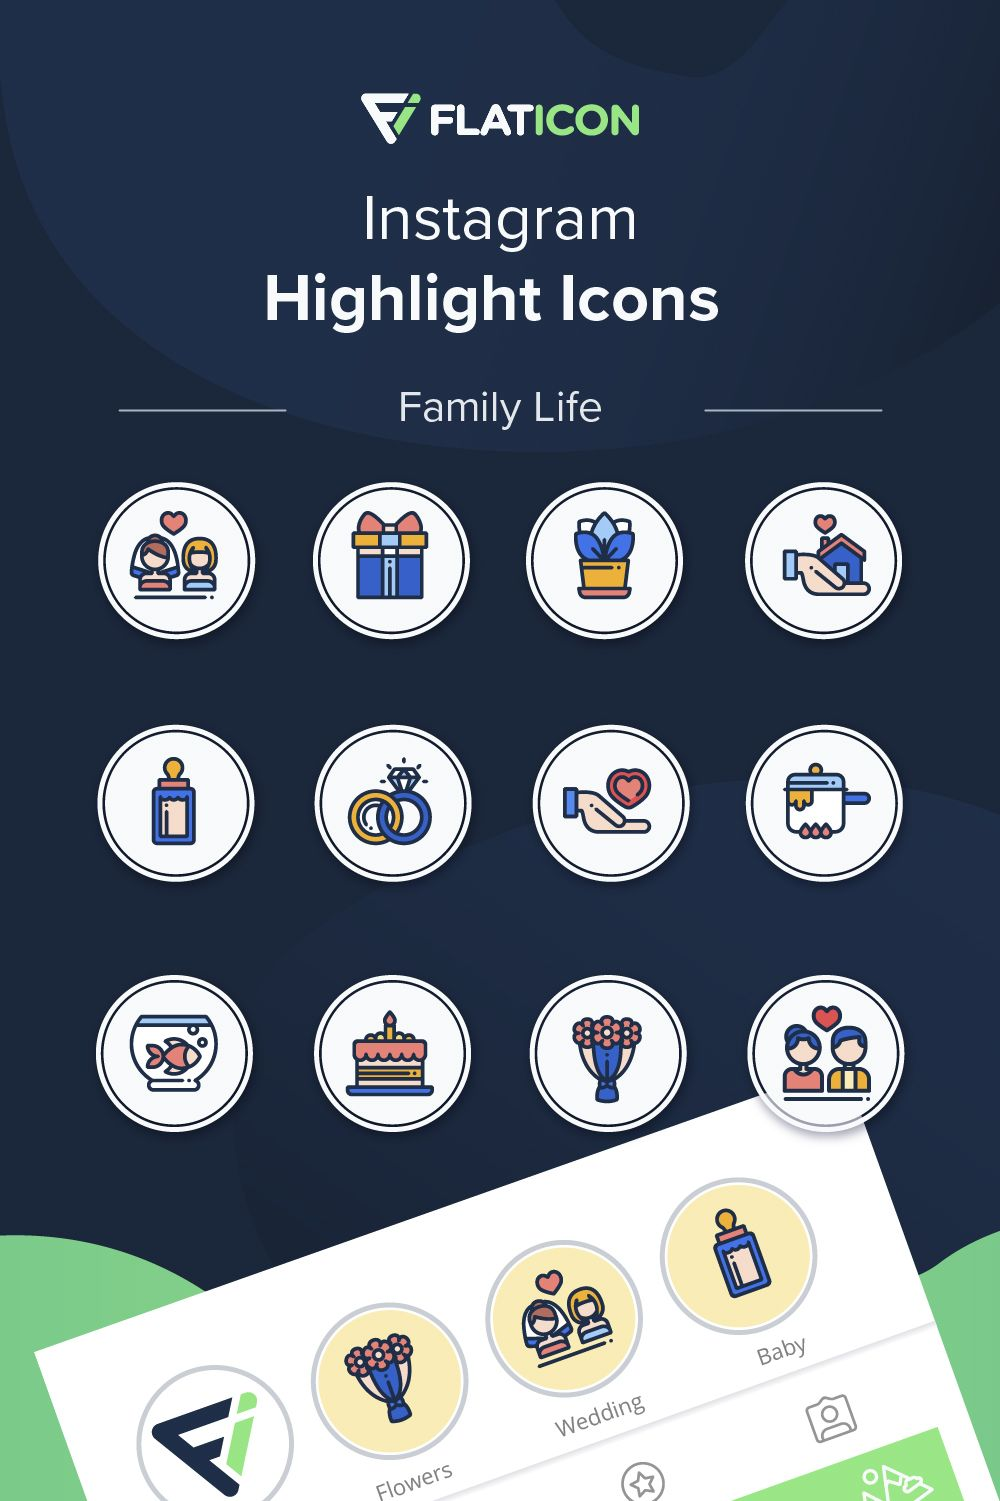 Flaticon in 2020 Instagram highlight icons, Instagram, Icon